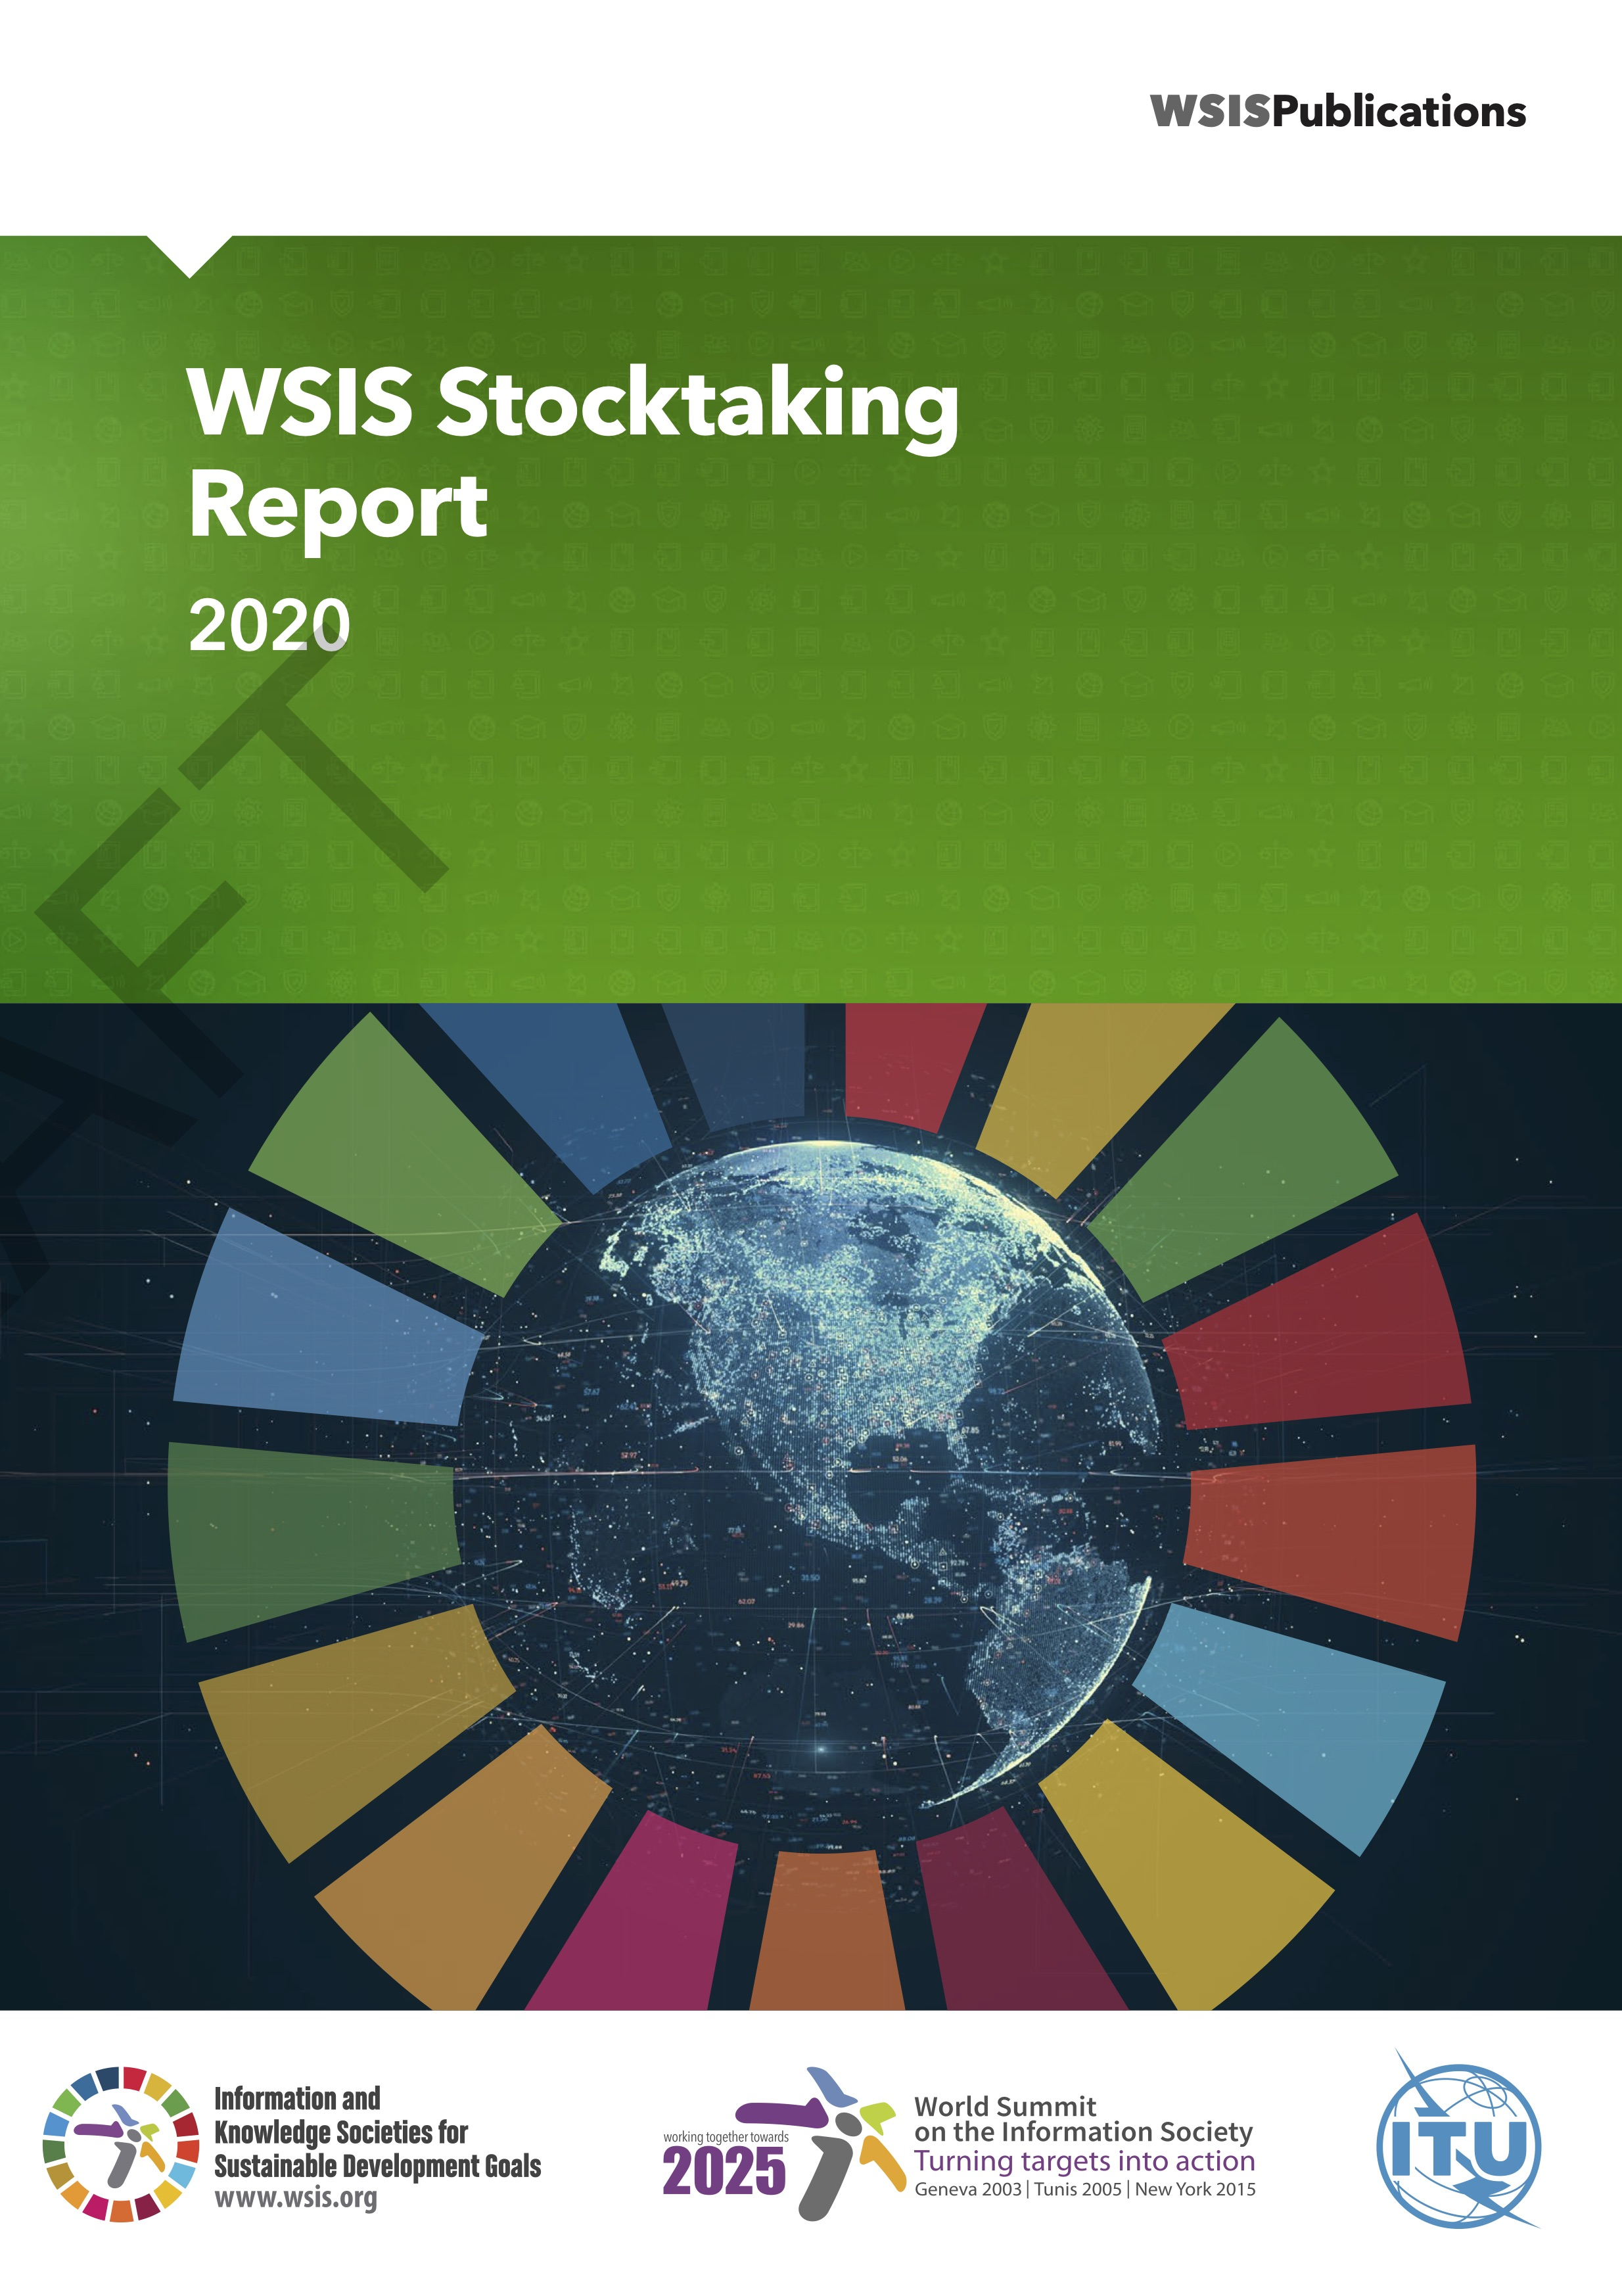 WSIS Stocktaking Report 2020